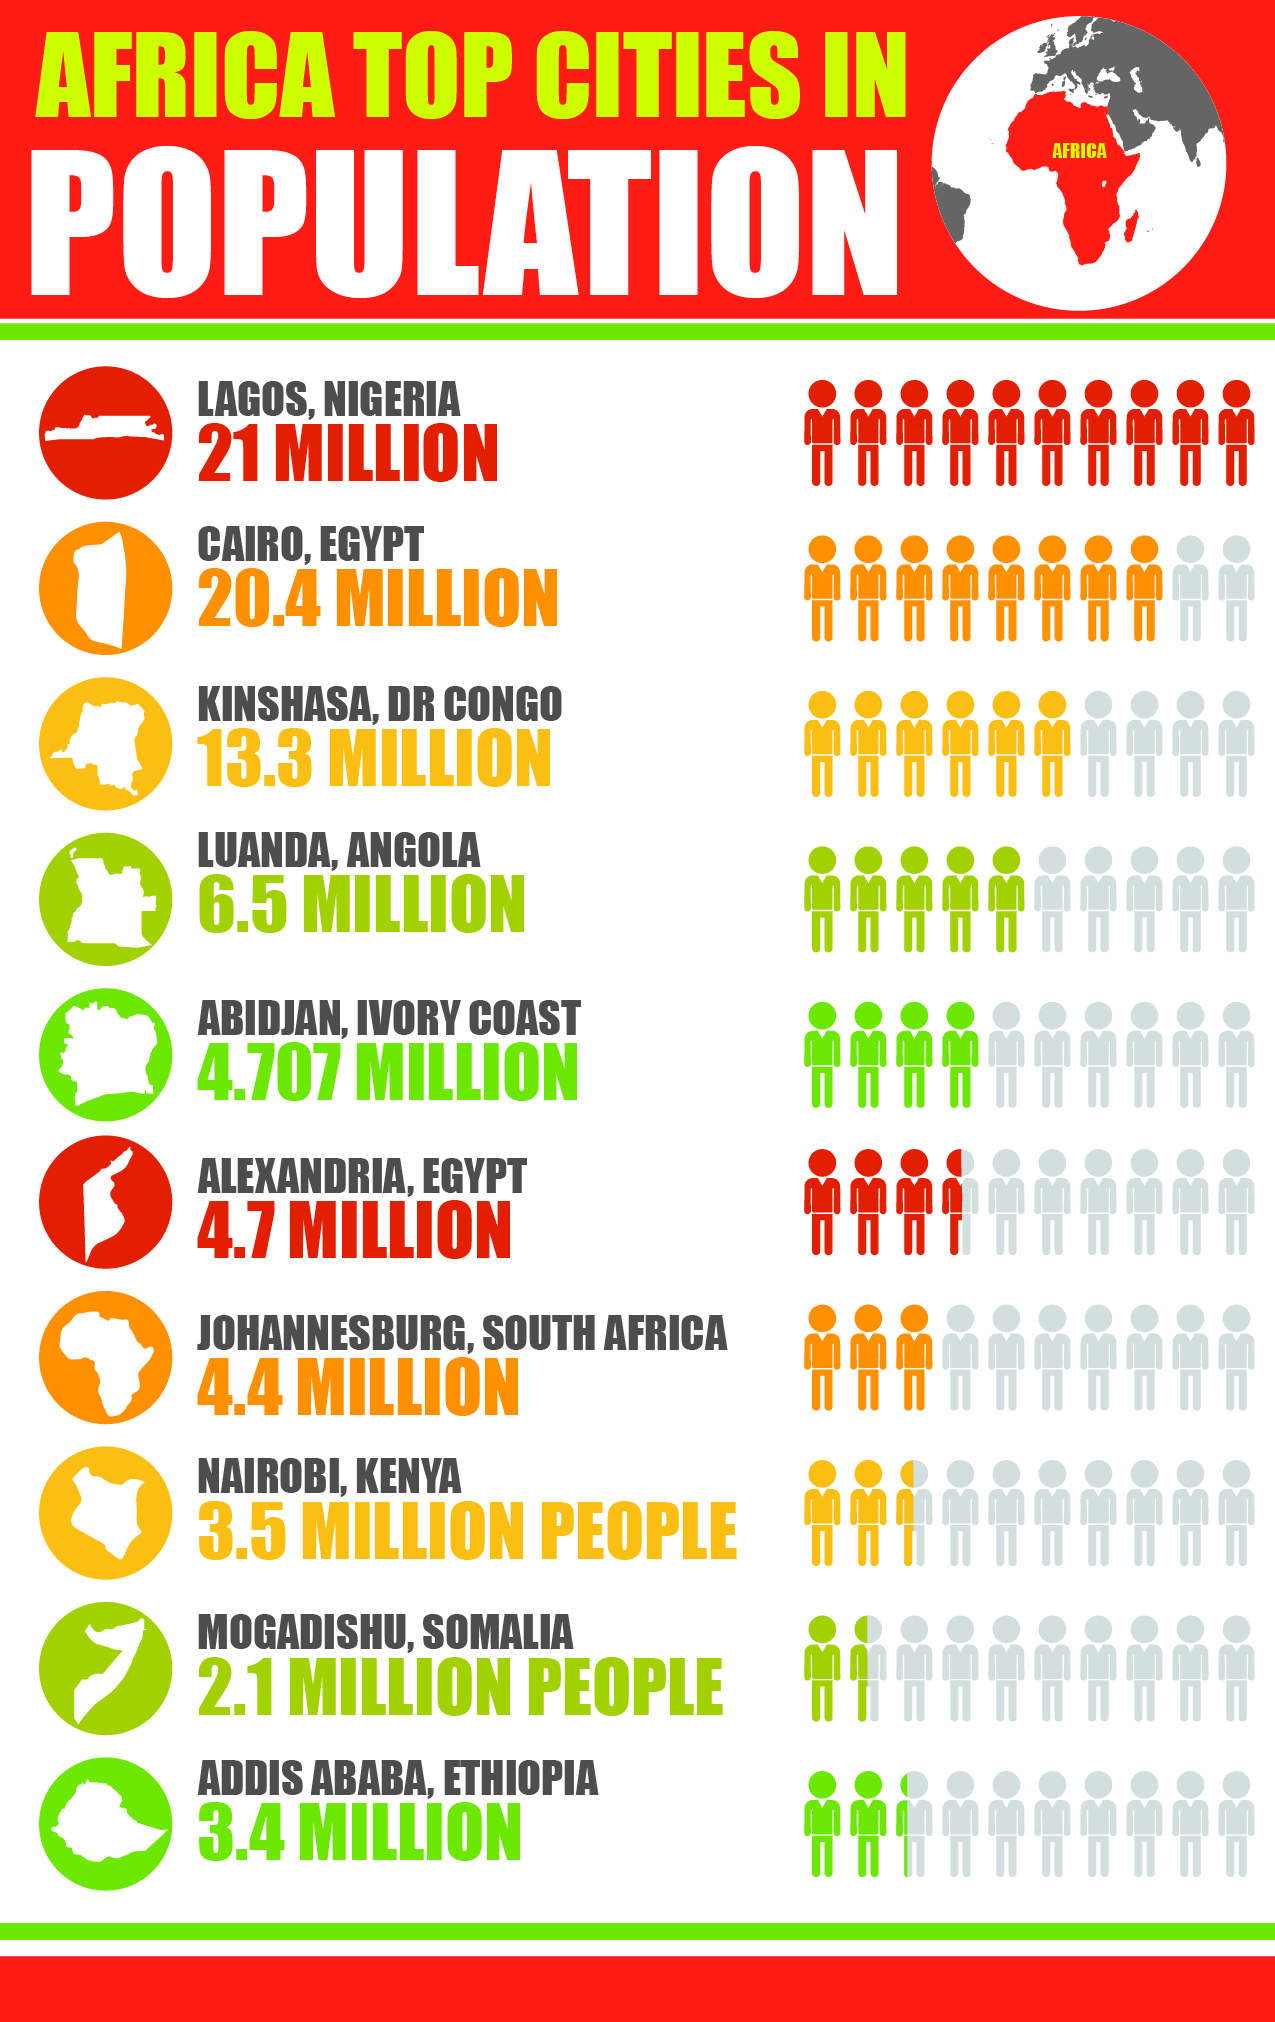 Top 10 cities in Africa by population